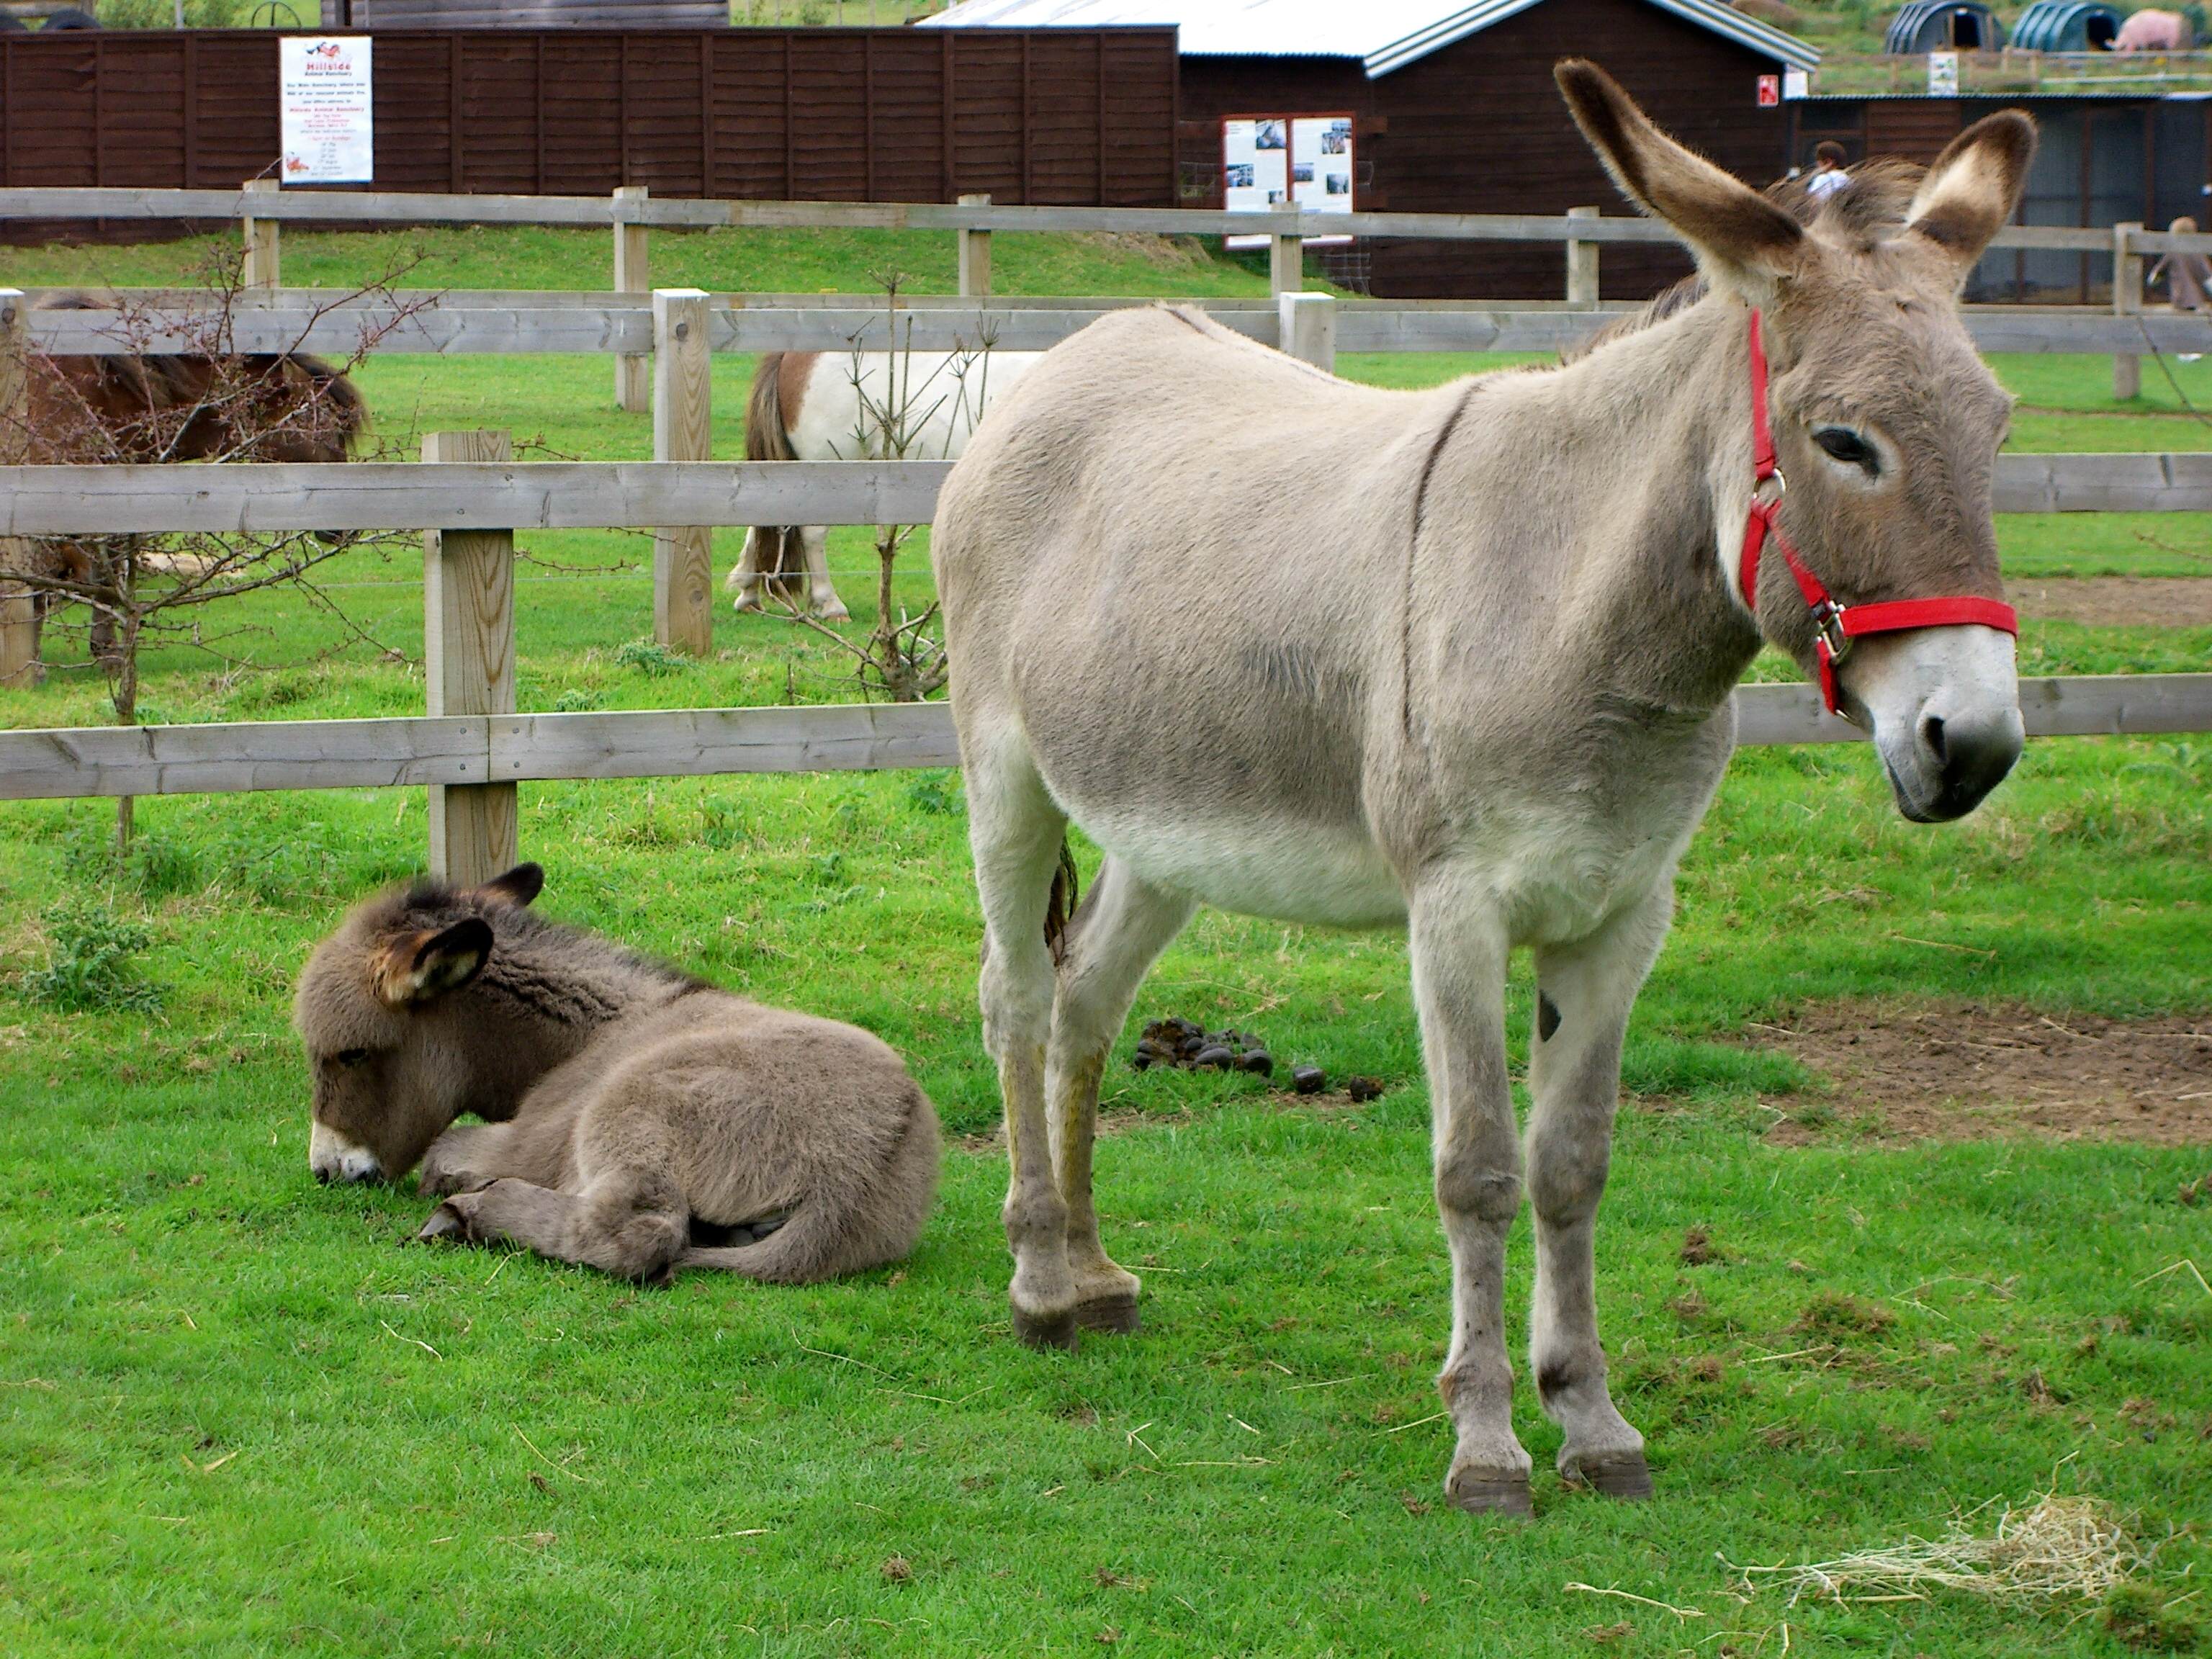 Farm donkeys - photo#1